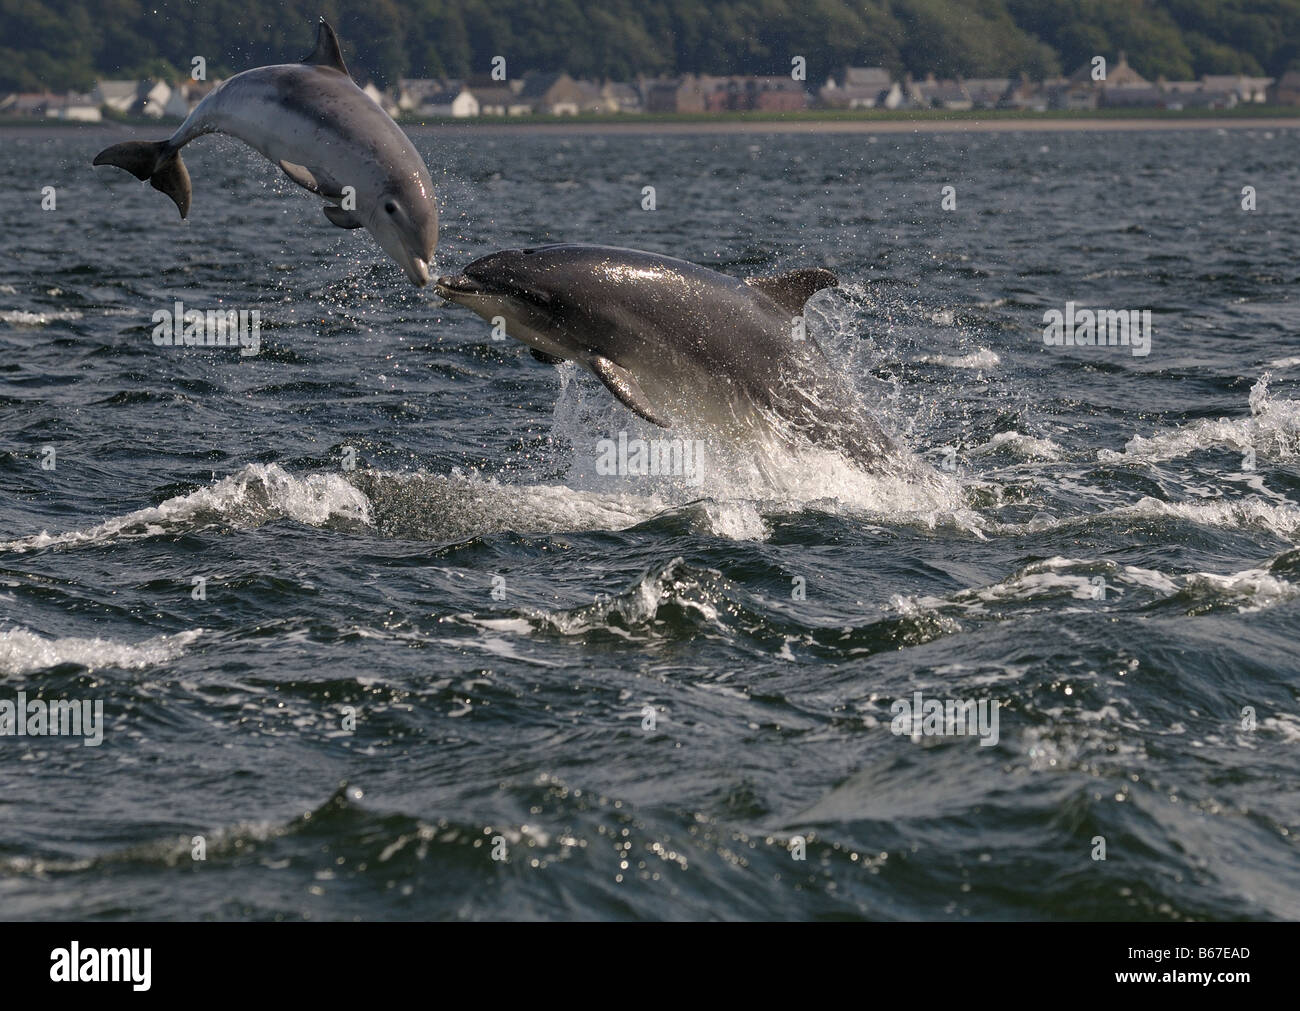 The Kiss of a female Bottlenose Dolphin with her calf at Chanonry Point. Watching Dolphins at Chanonry Point. - Stock Image